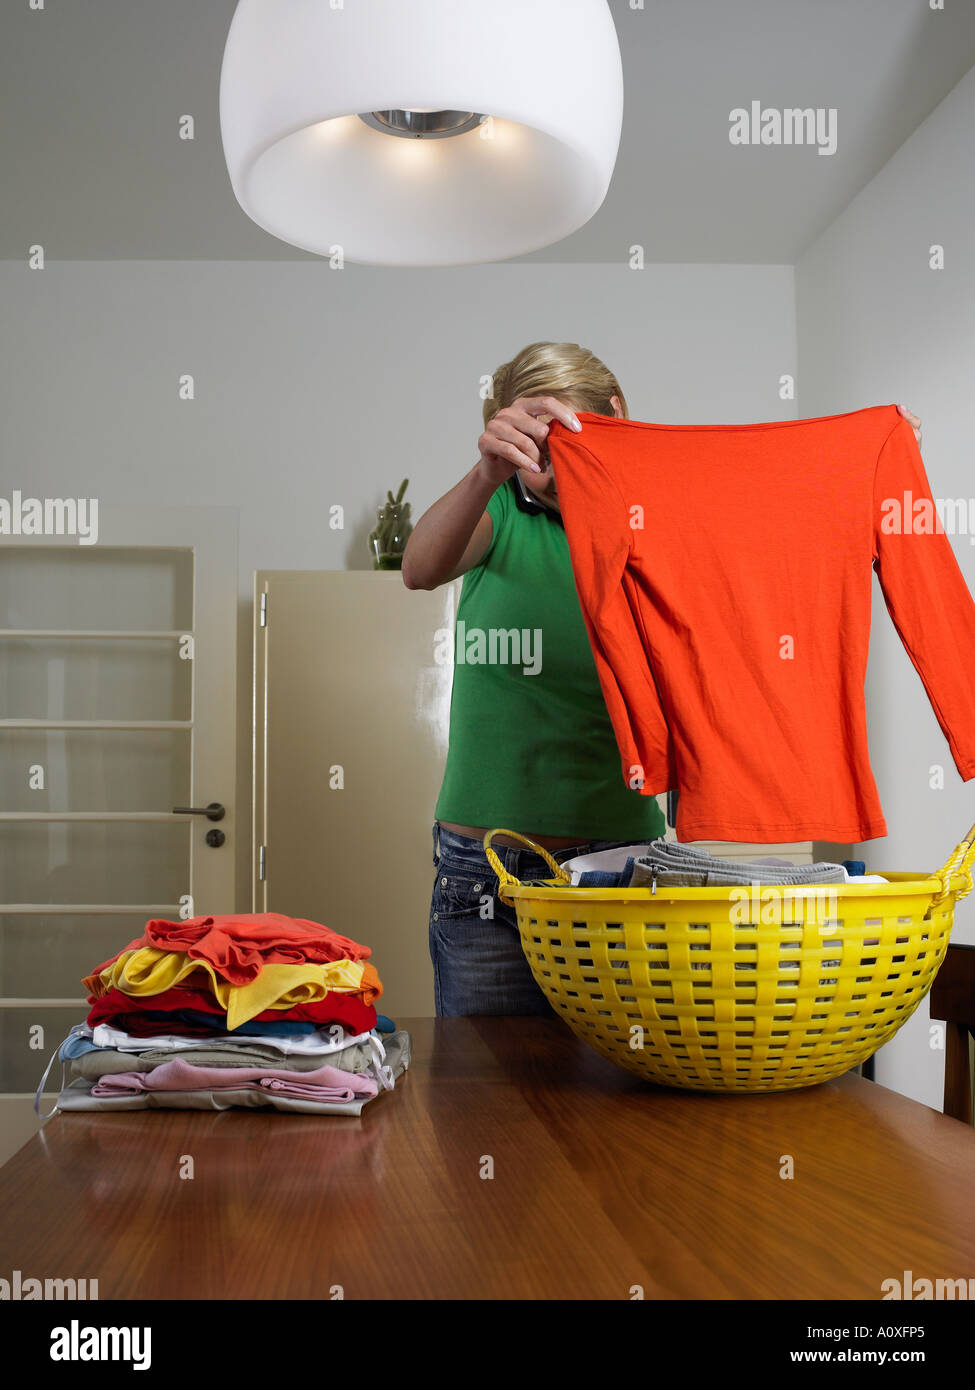 Woman folding clothes whilst on mobile phone - Stock Image